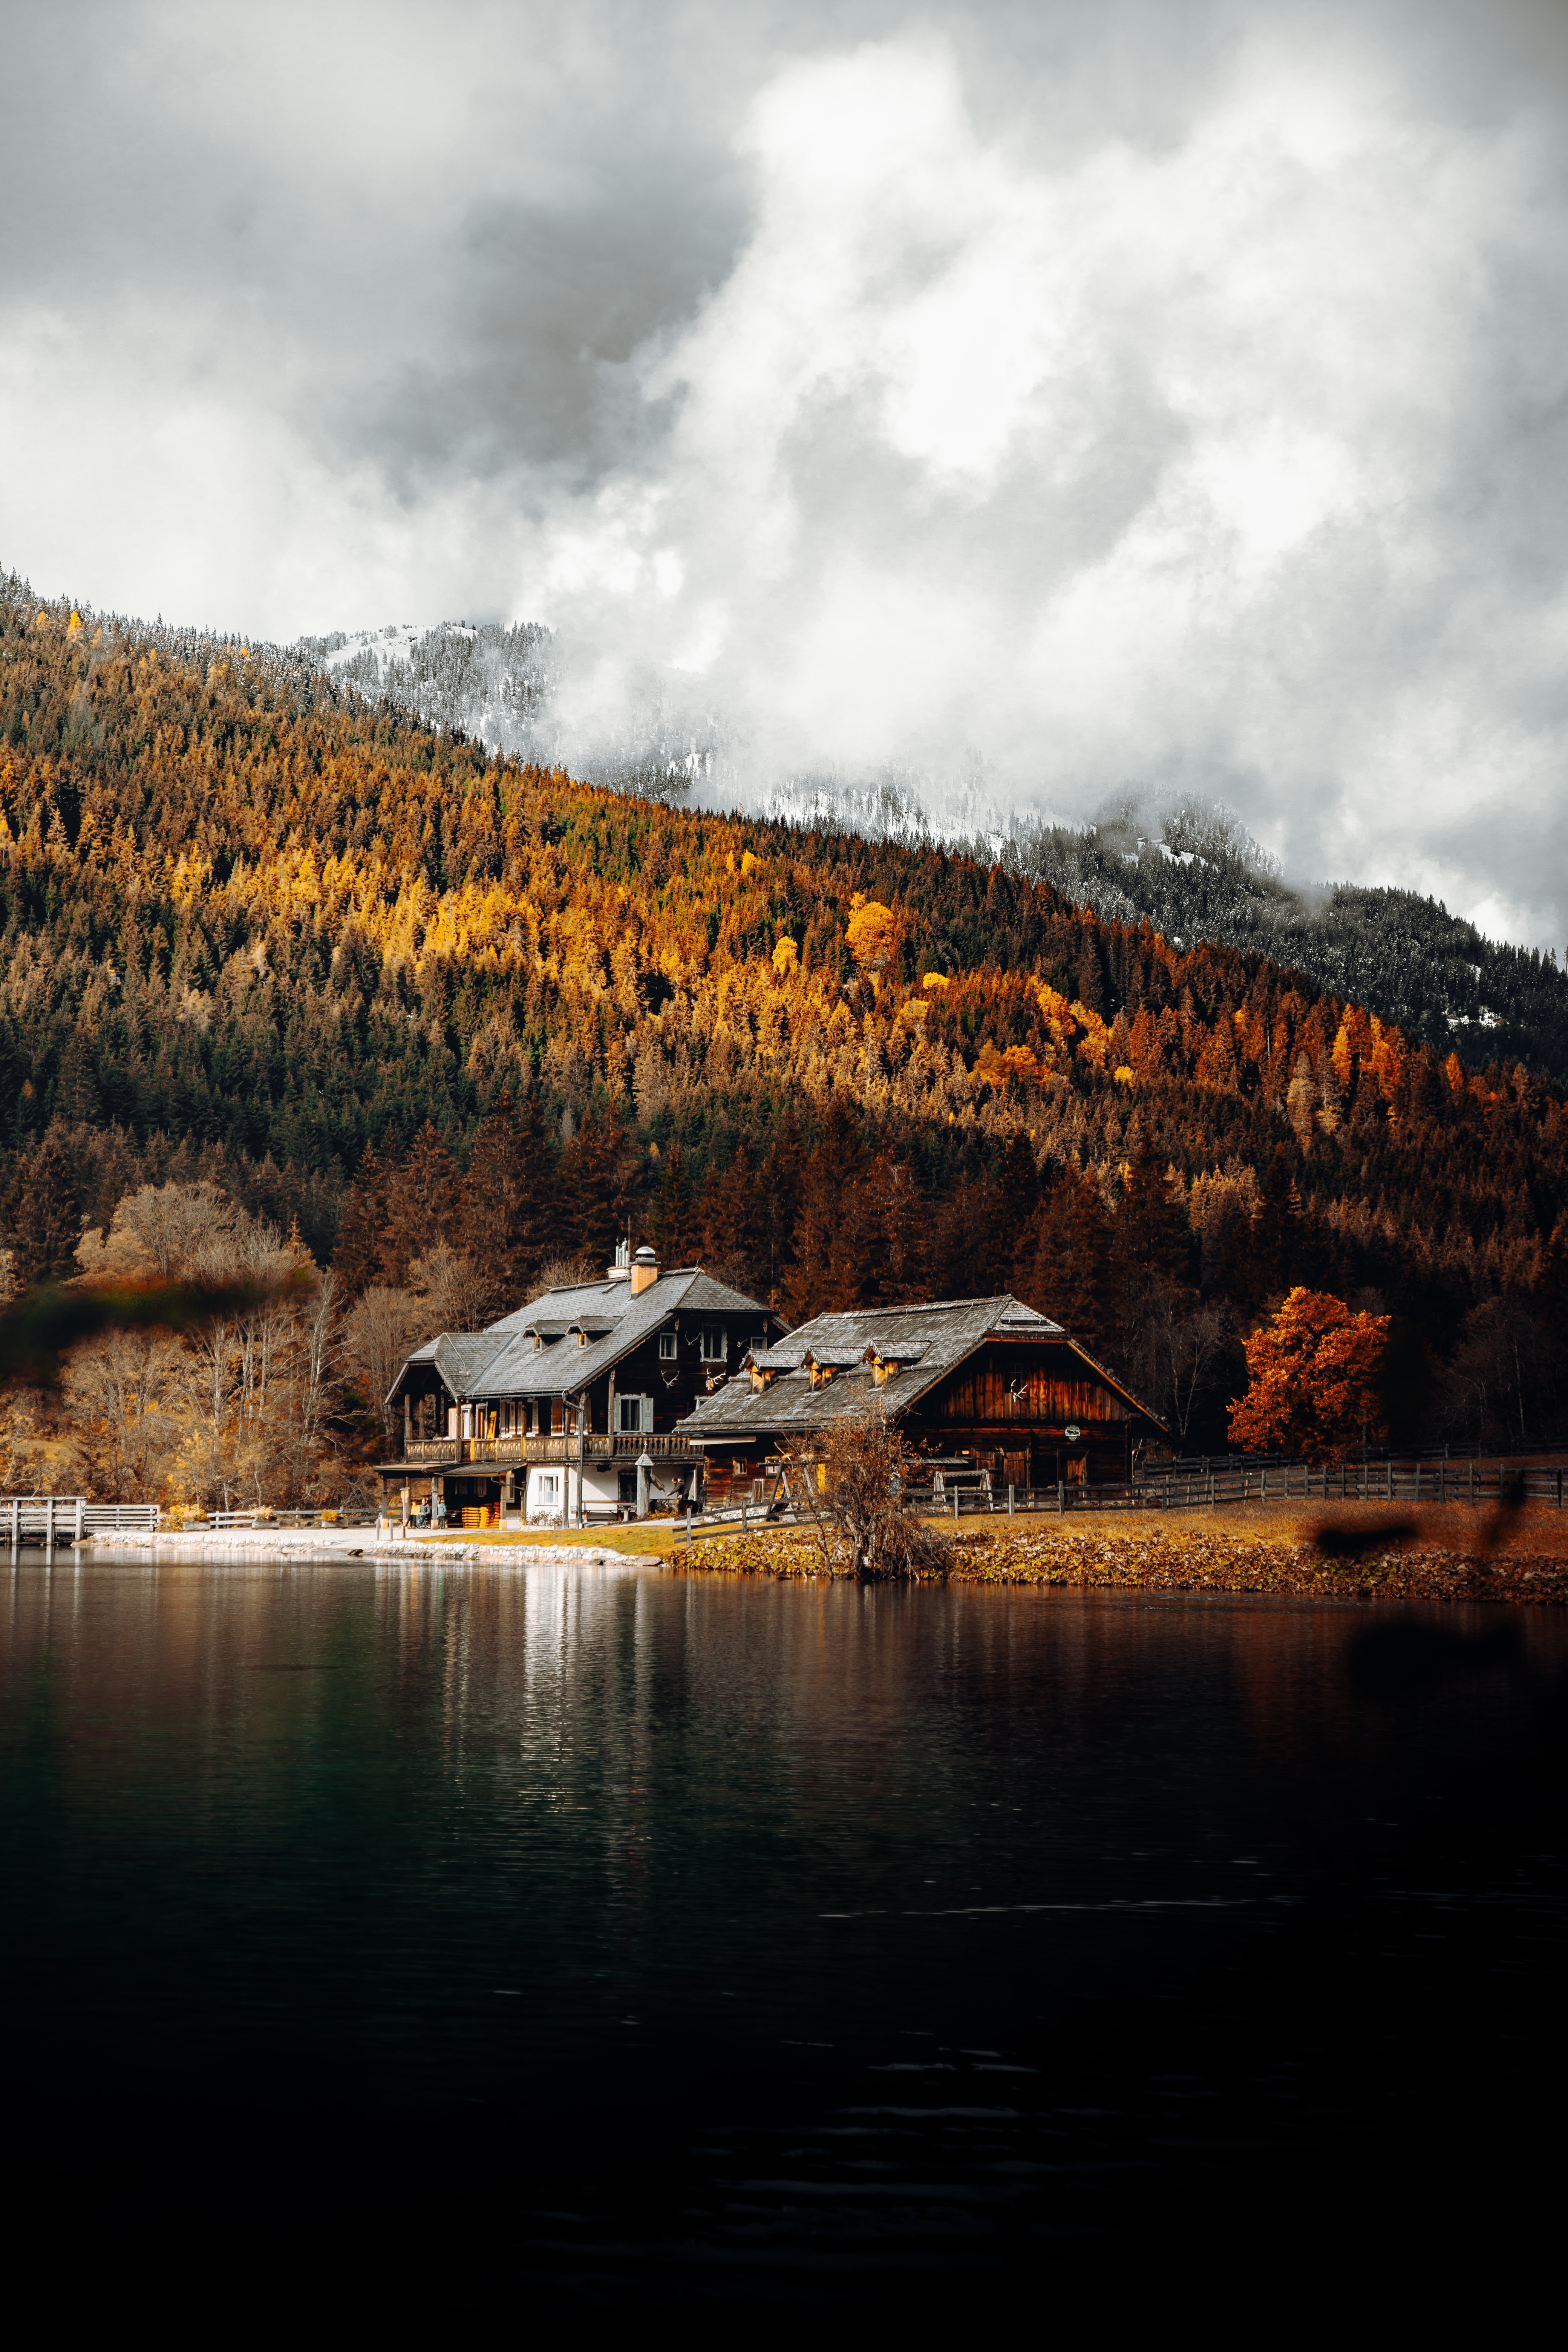 67362 download wallpaper Landscape, Nature, Autumn, Lake, Forest, House screensavers and pictures for free